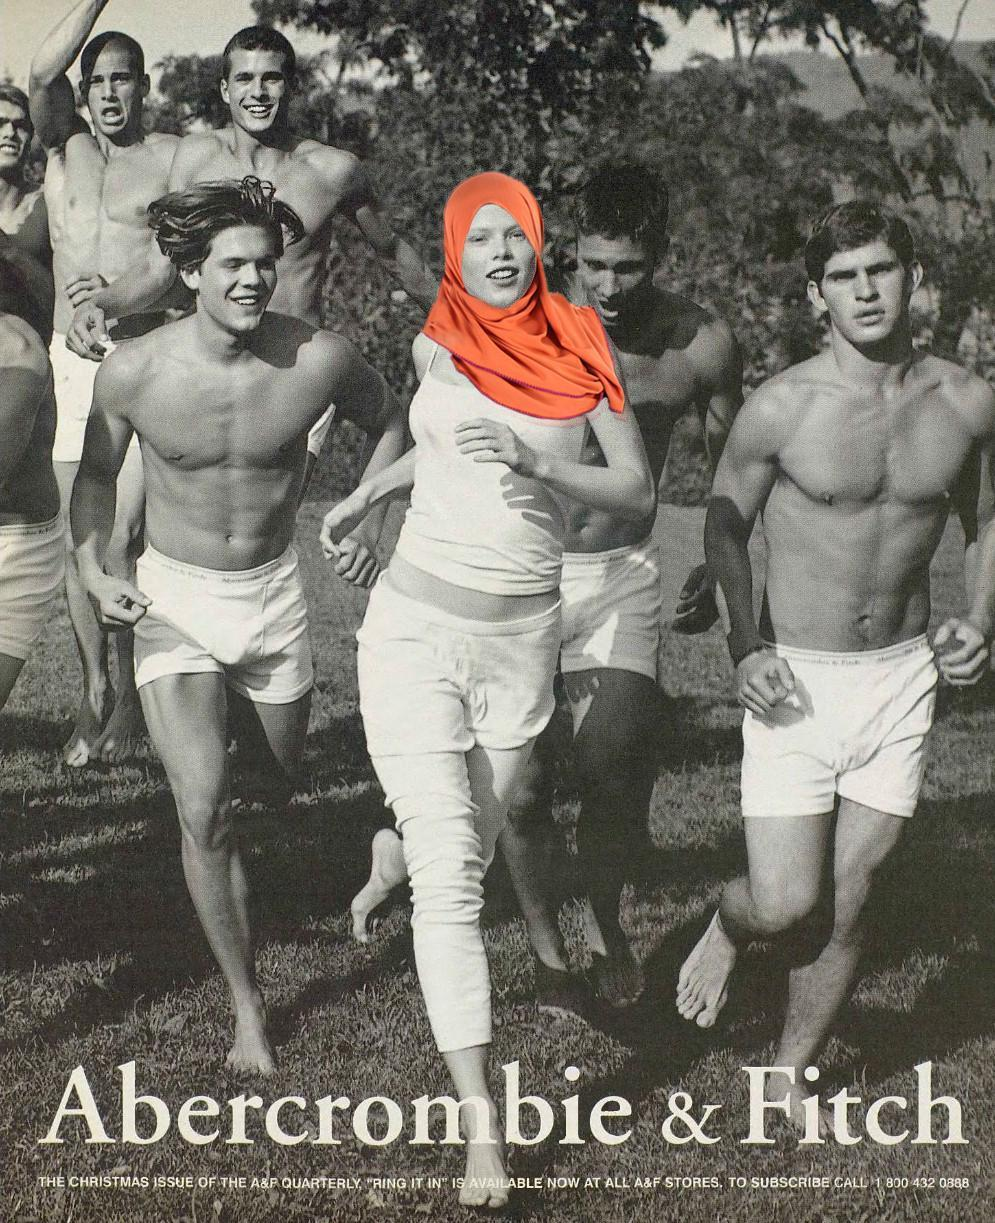 Supreme Court Says Abercrombie & Fitch Was Wrong for Not Hiring Muslim Woman Wearing a Headscarf